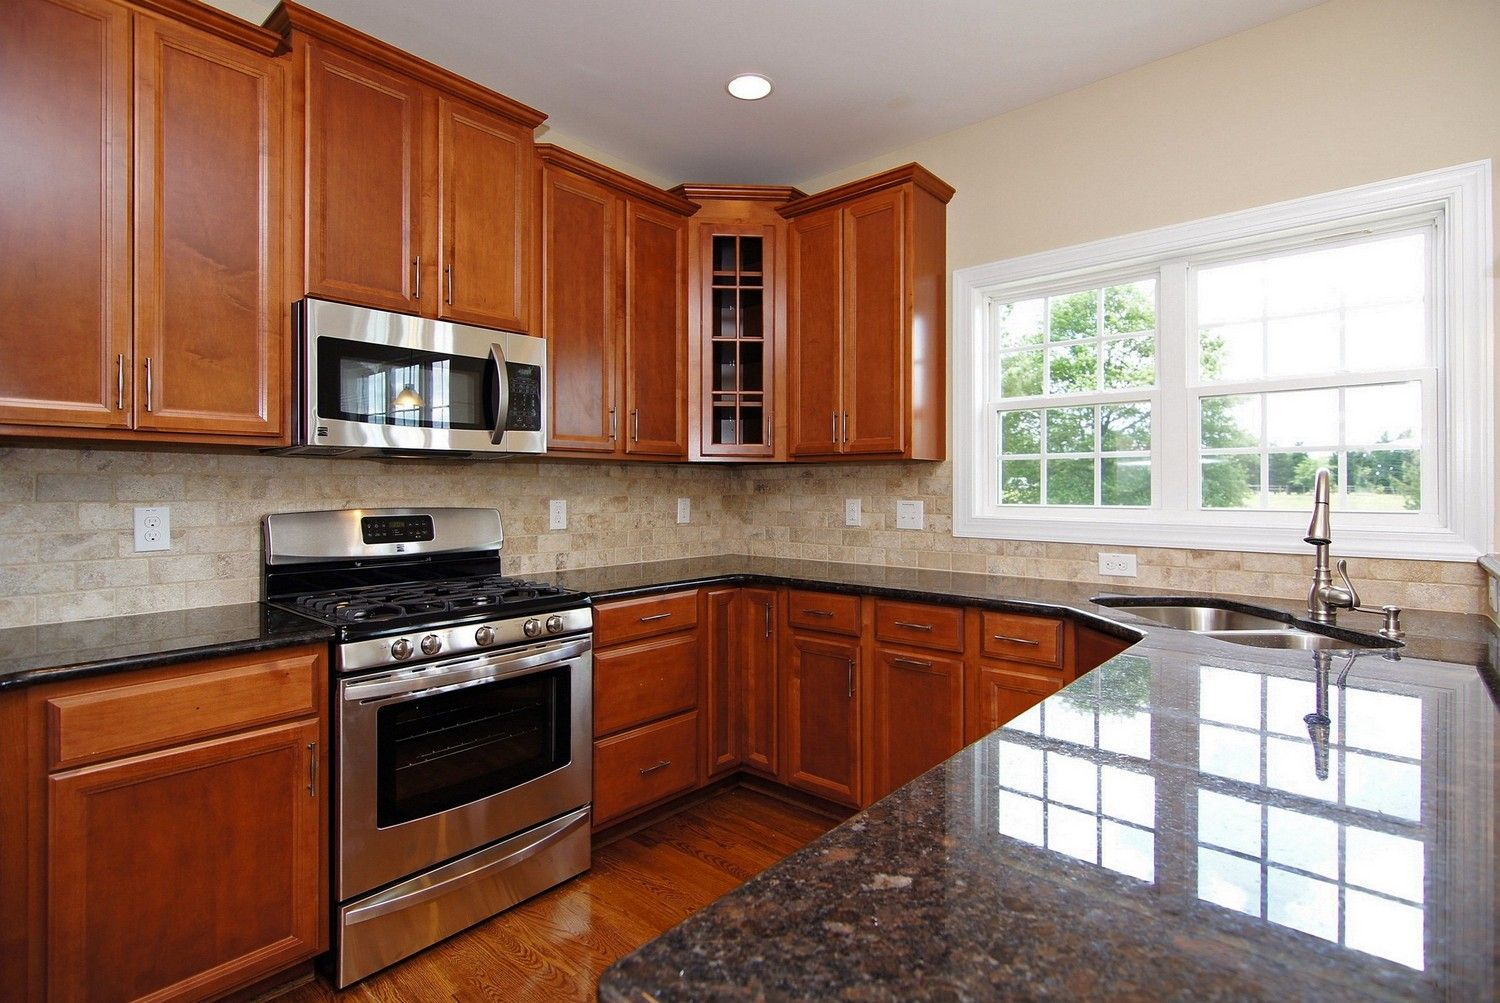 Peninsula Kitchen Ideas With Black Granite Counter Tops Stainless